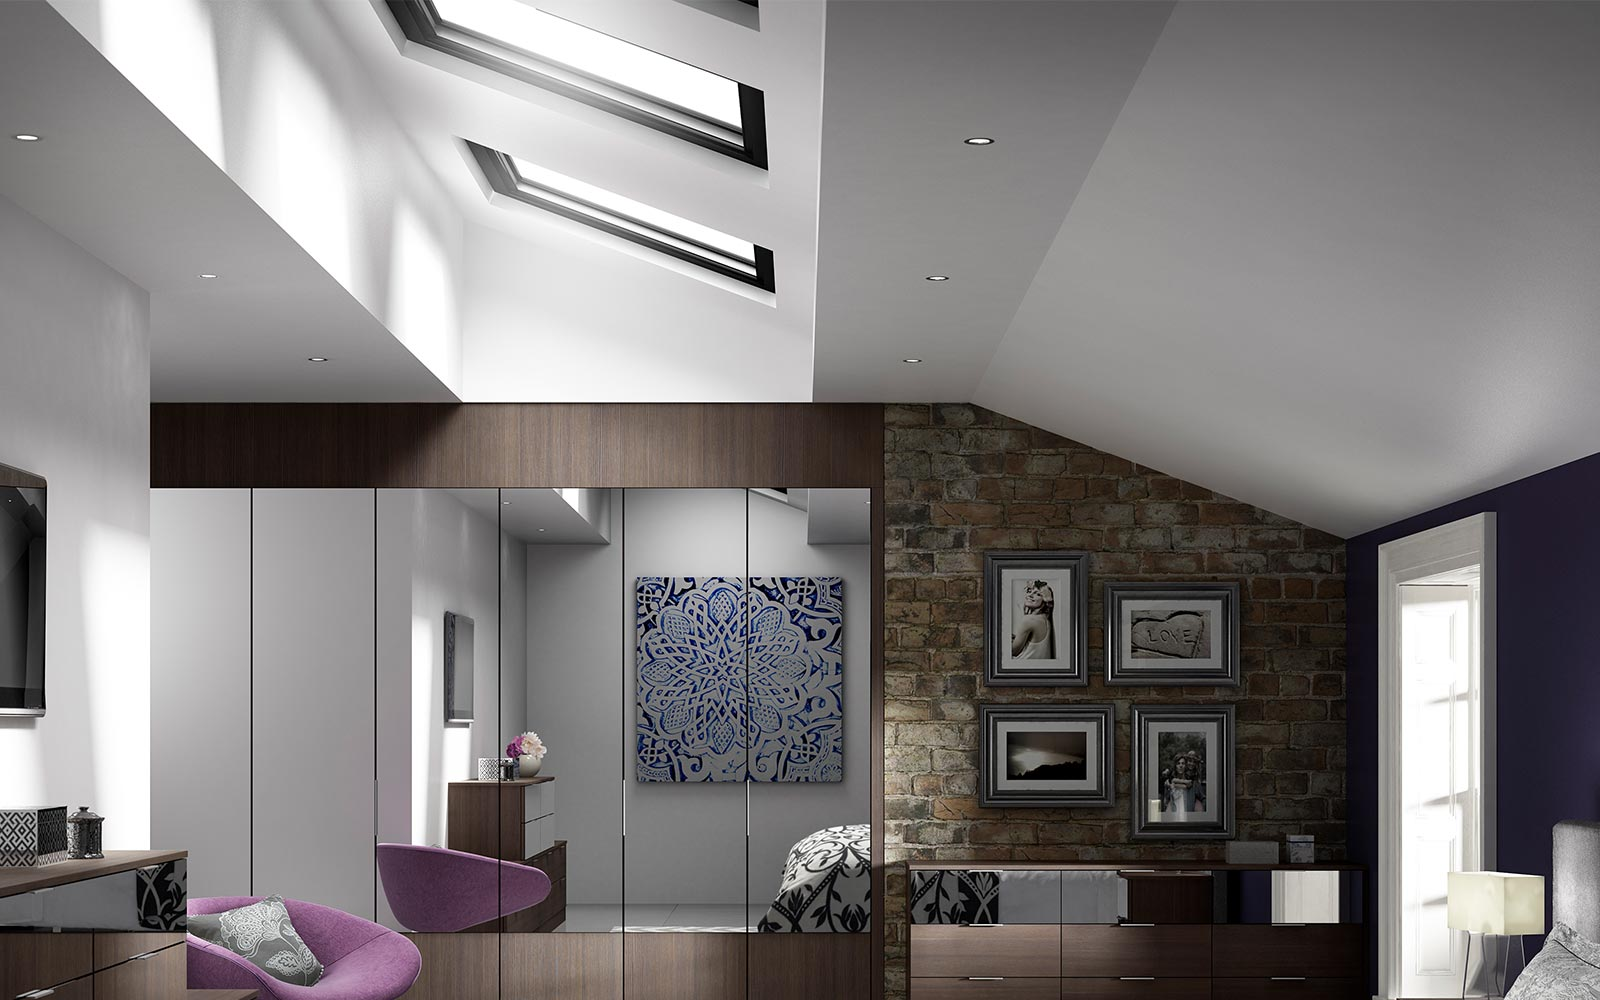 modern lighting bedroom. Emphasising Light In A Modern Bedroom Is Essential, Illuminating The Room Making It Appear More Spacious. Simplest Way To Do This Through Lighting R